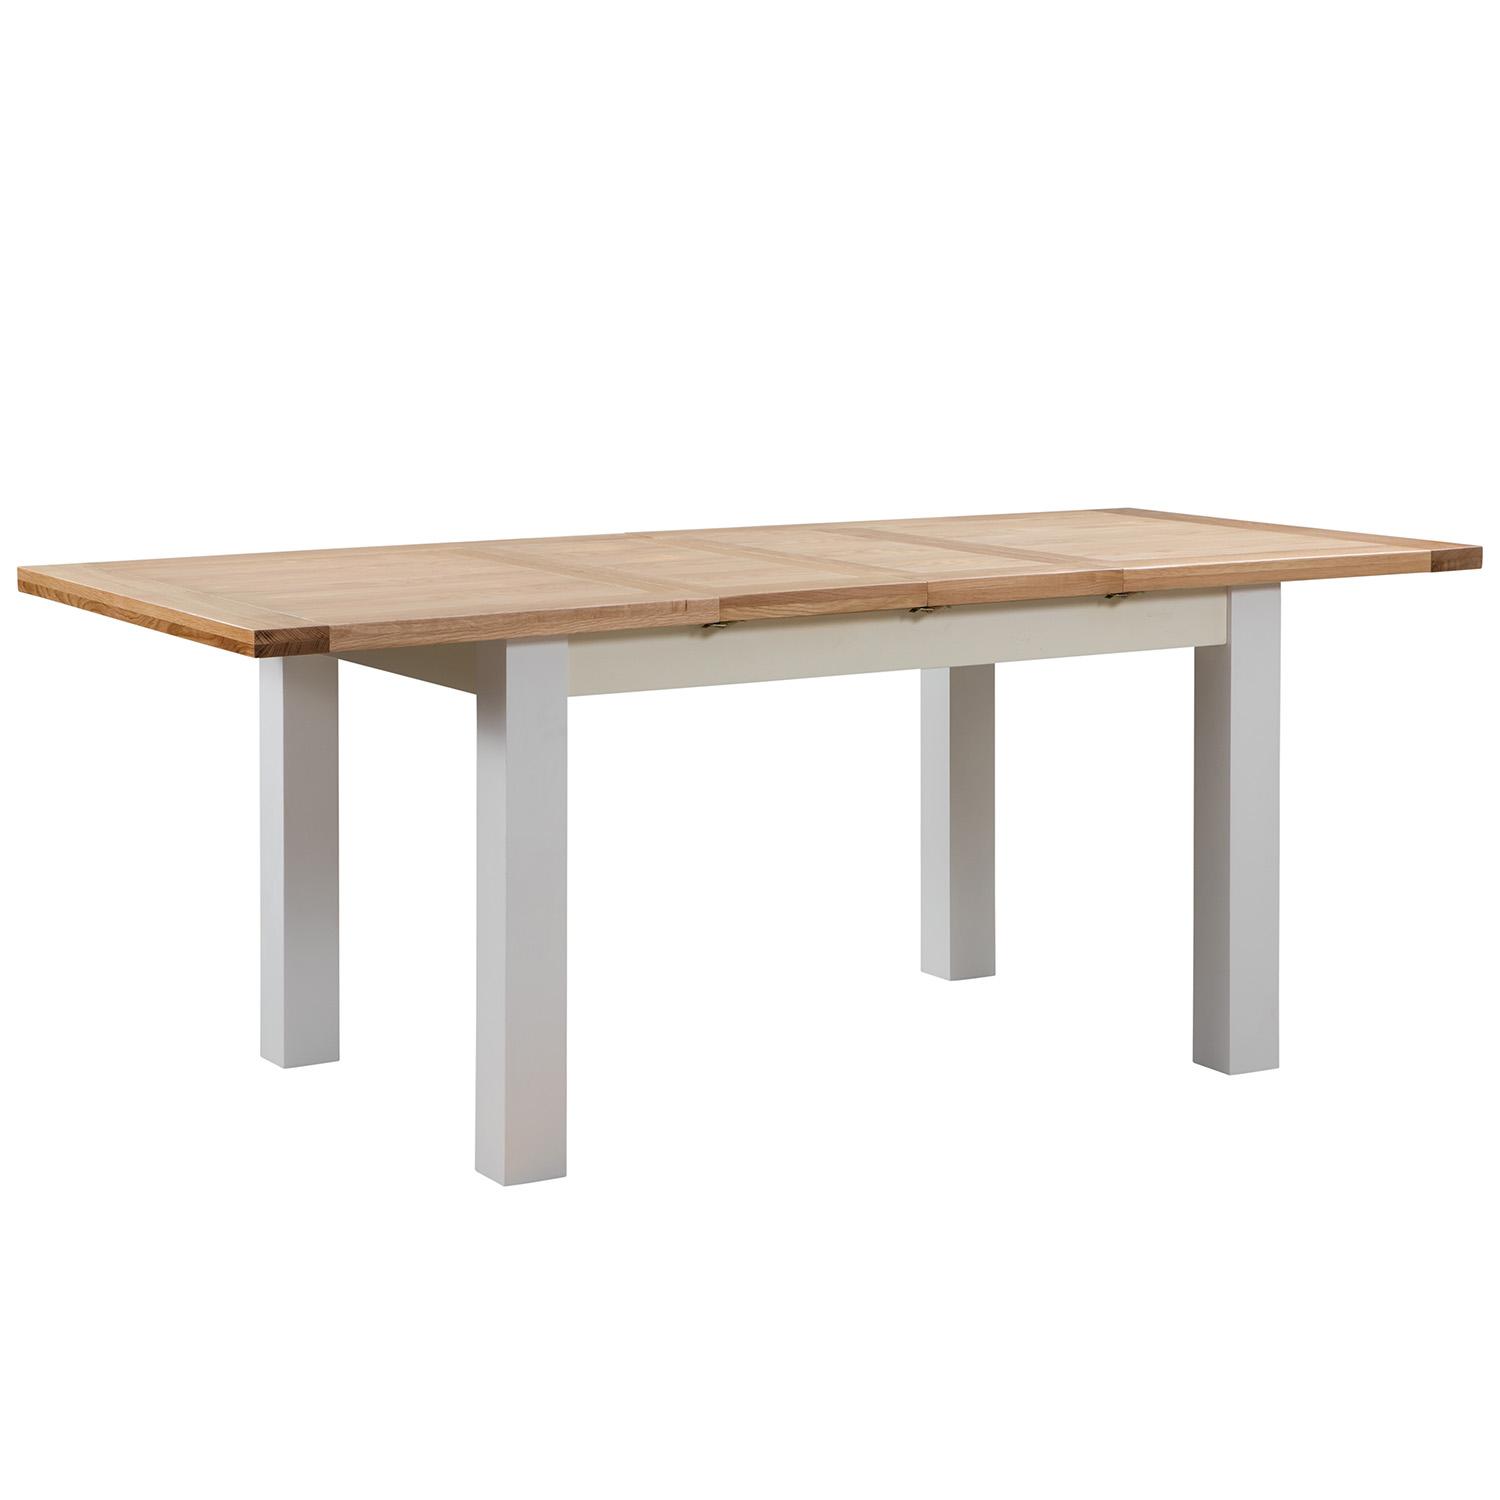 Maiden Oak Painted Dining Table with 2 Extensions 132-198 x 90